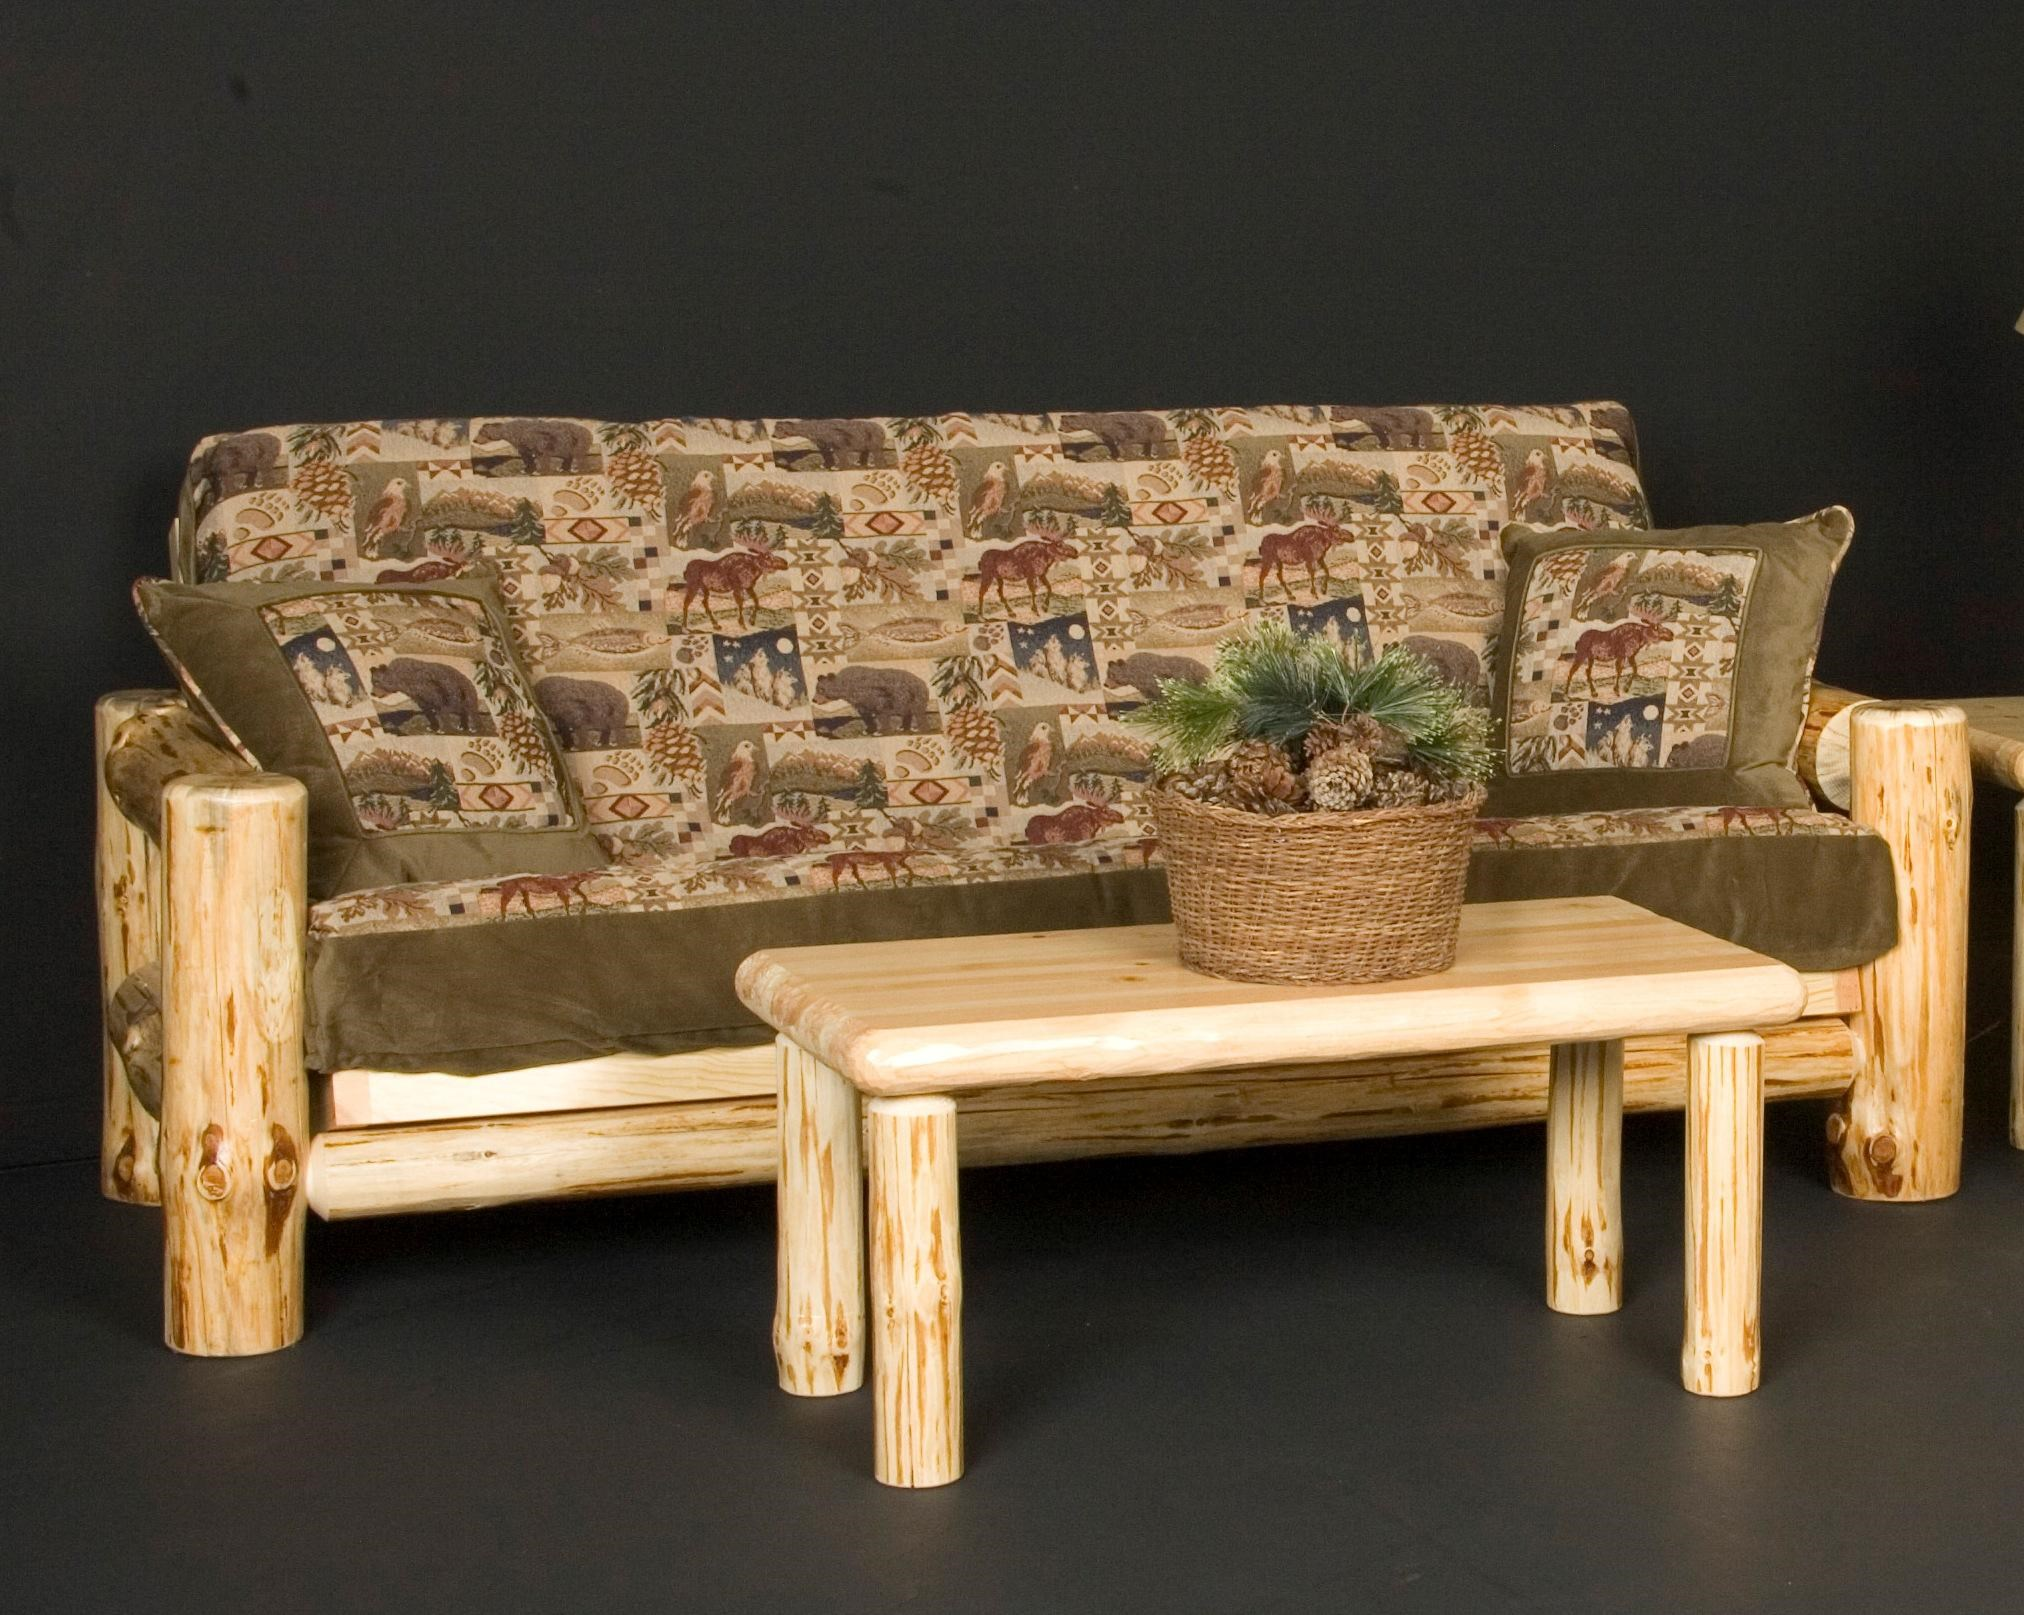 Wilderness Rustic Full Futon With Included Mattress And Exposed Wood Frame    Becker Furniture World   Futon